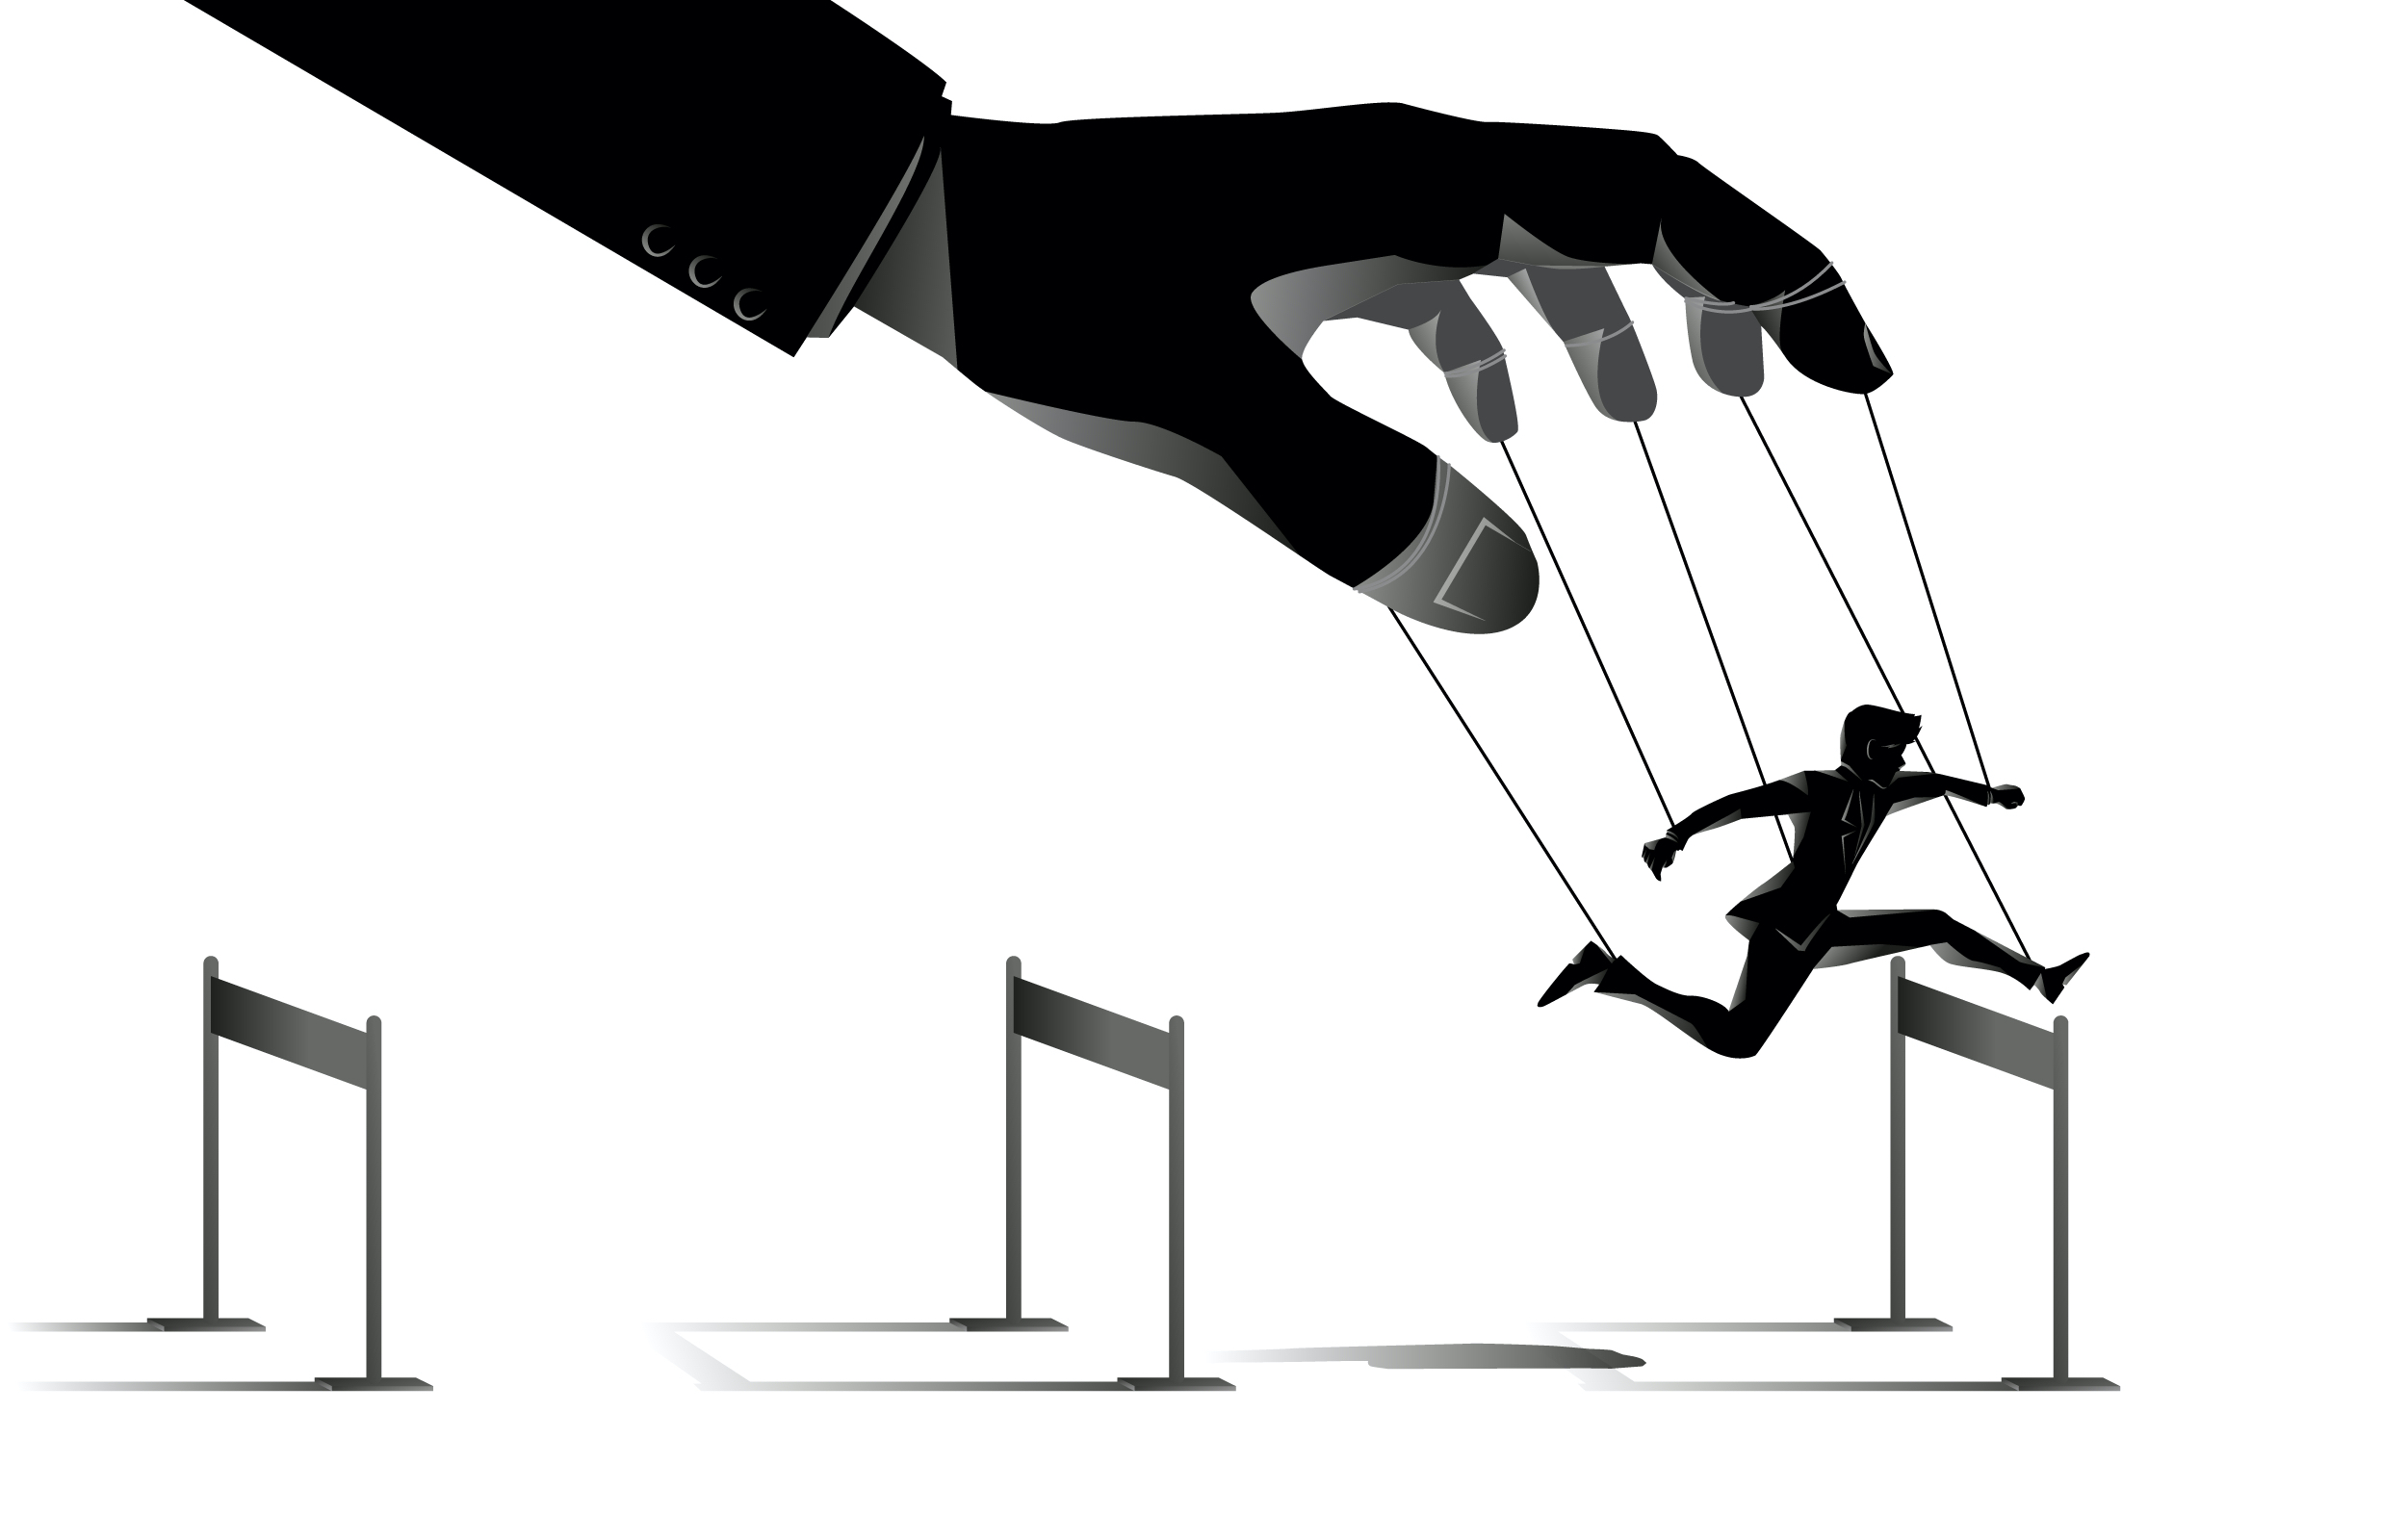 Puppet controlled by a hand illustration